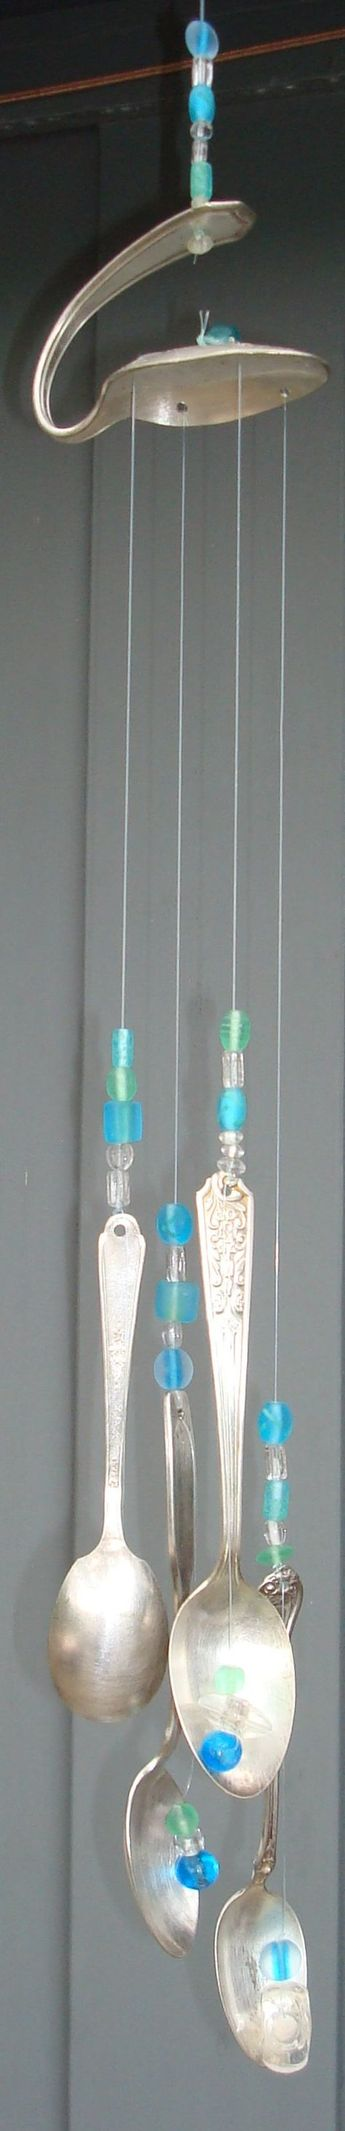 Vintage OneofaKind Silverware Wind Chime Mobile by KineticKutlery